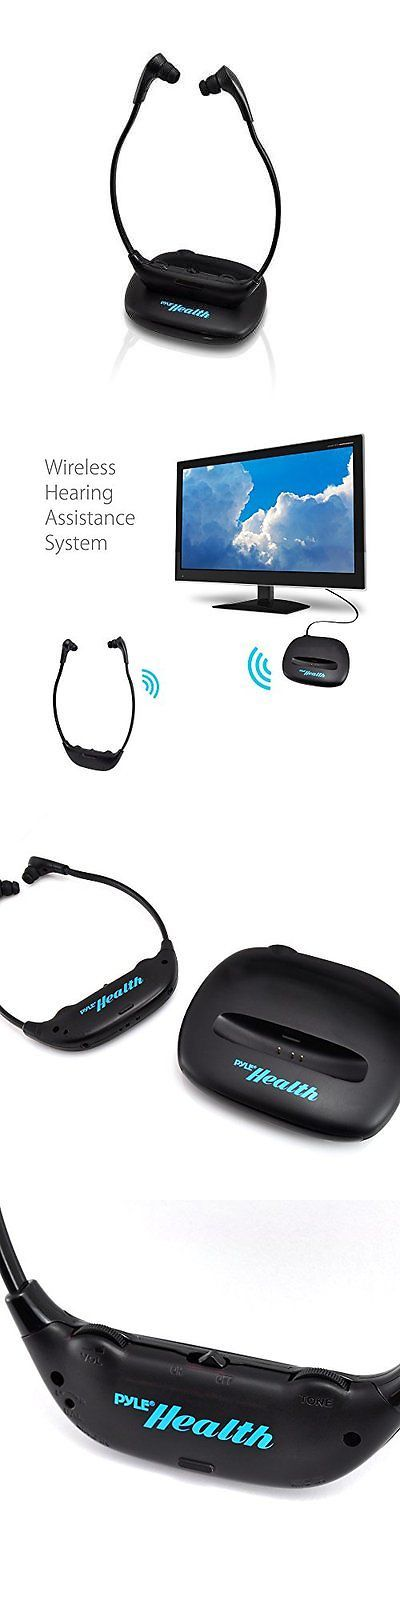 Mini Plug-in Microphones: Pyle Health Phpha56 Wireless Tv Headset Headphone System And Hearing New BUY IT NOW ONLY: $98.59